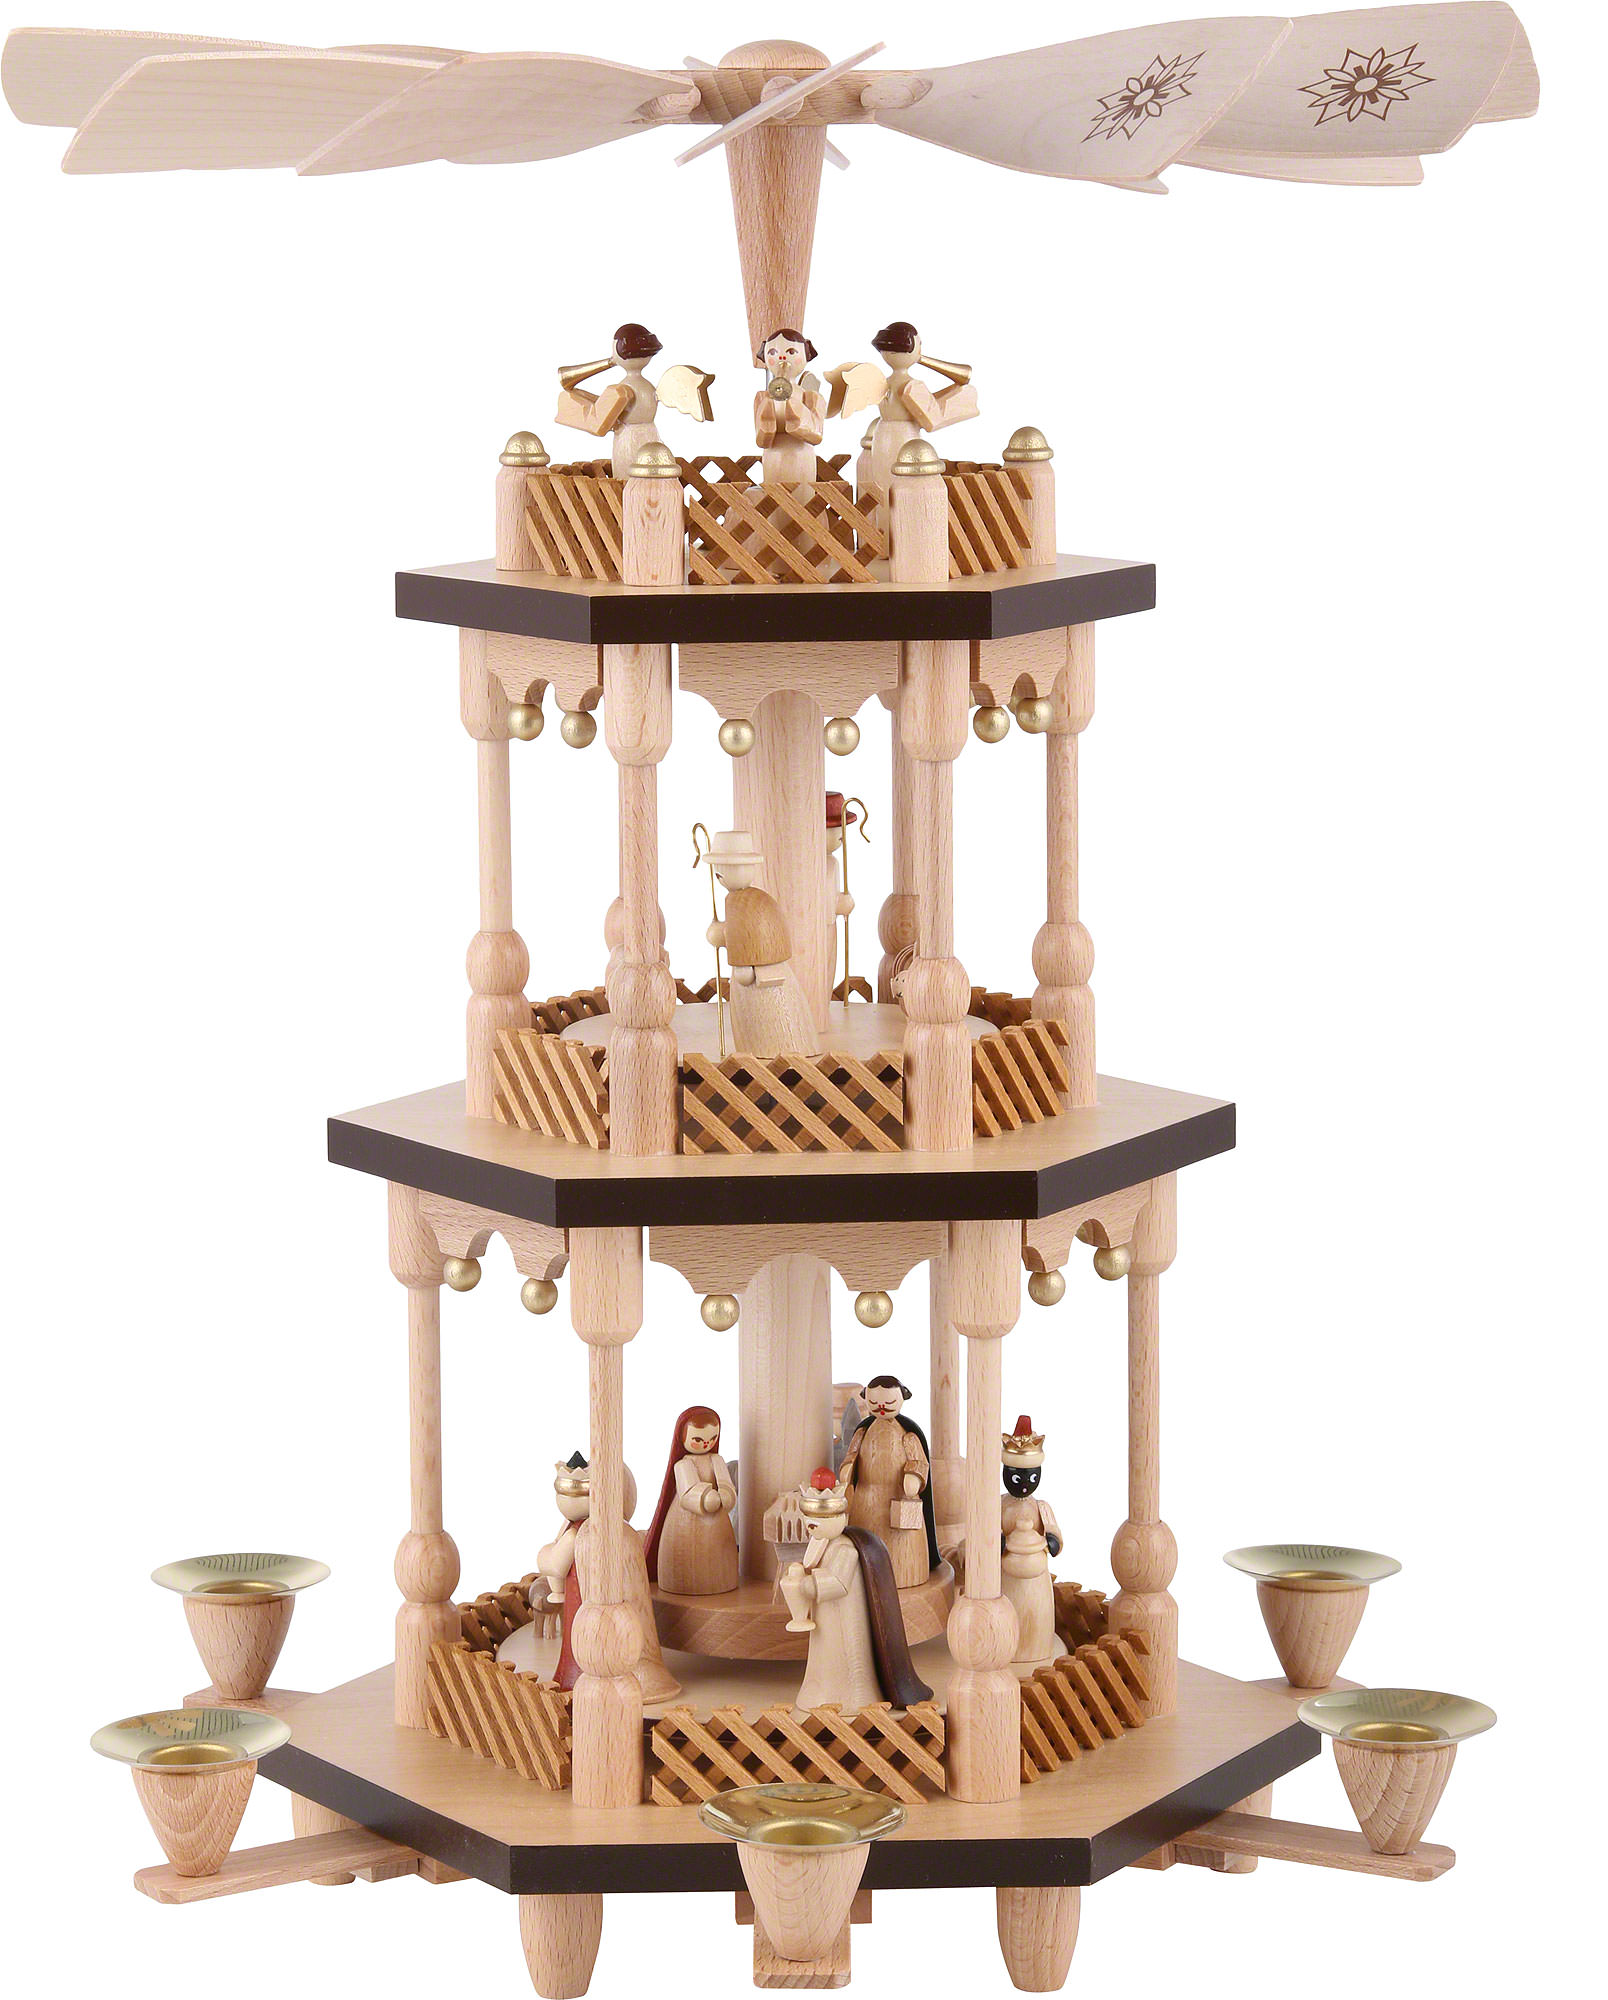 Christmas Pyramid.3 Tier Pyramid Nativity Scene Natural Wood 38 Cm 15 Inch